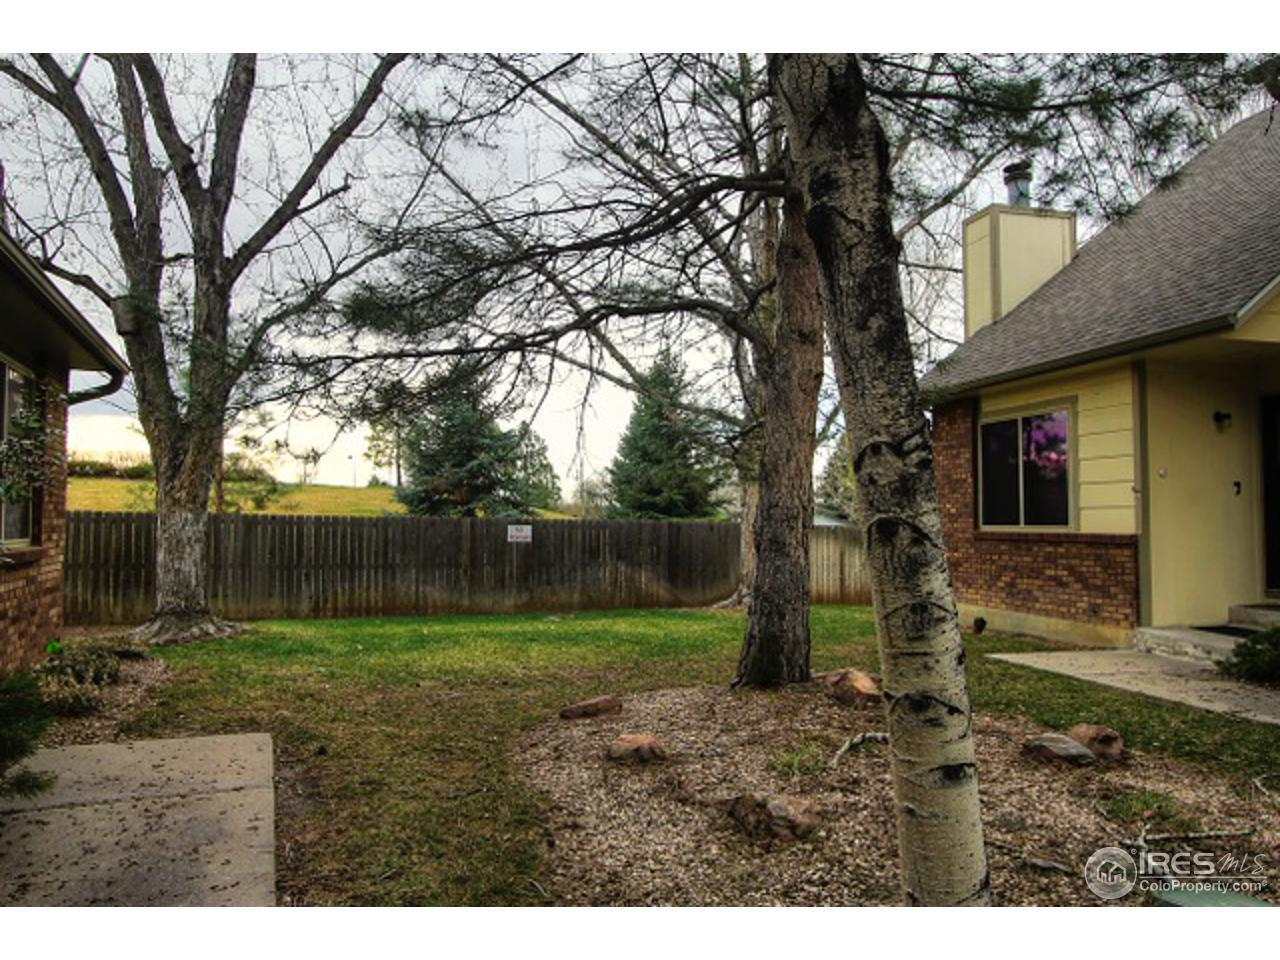 907 44th ave ct #15, greeley, co 80634 | mls# 817923 | redfin